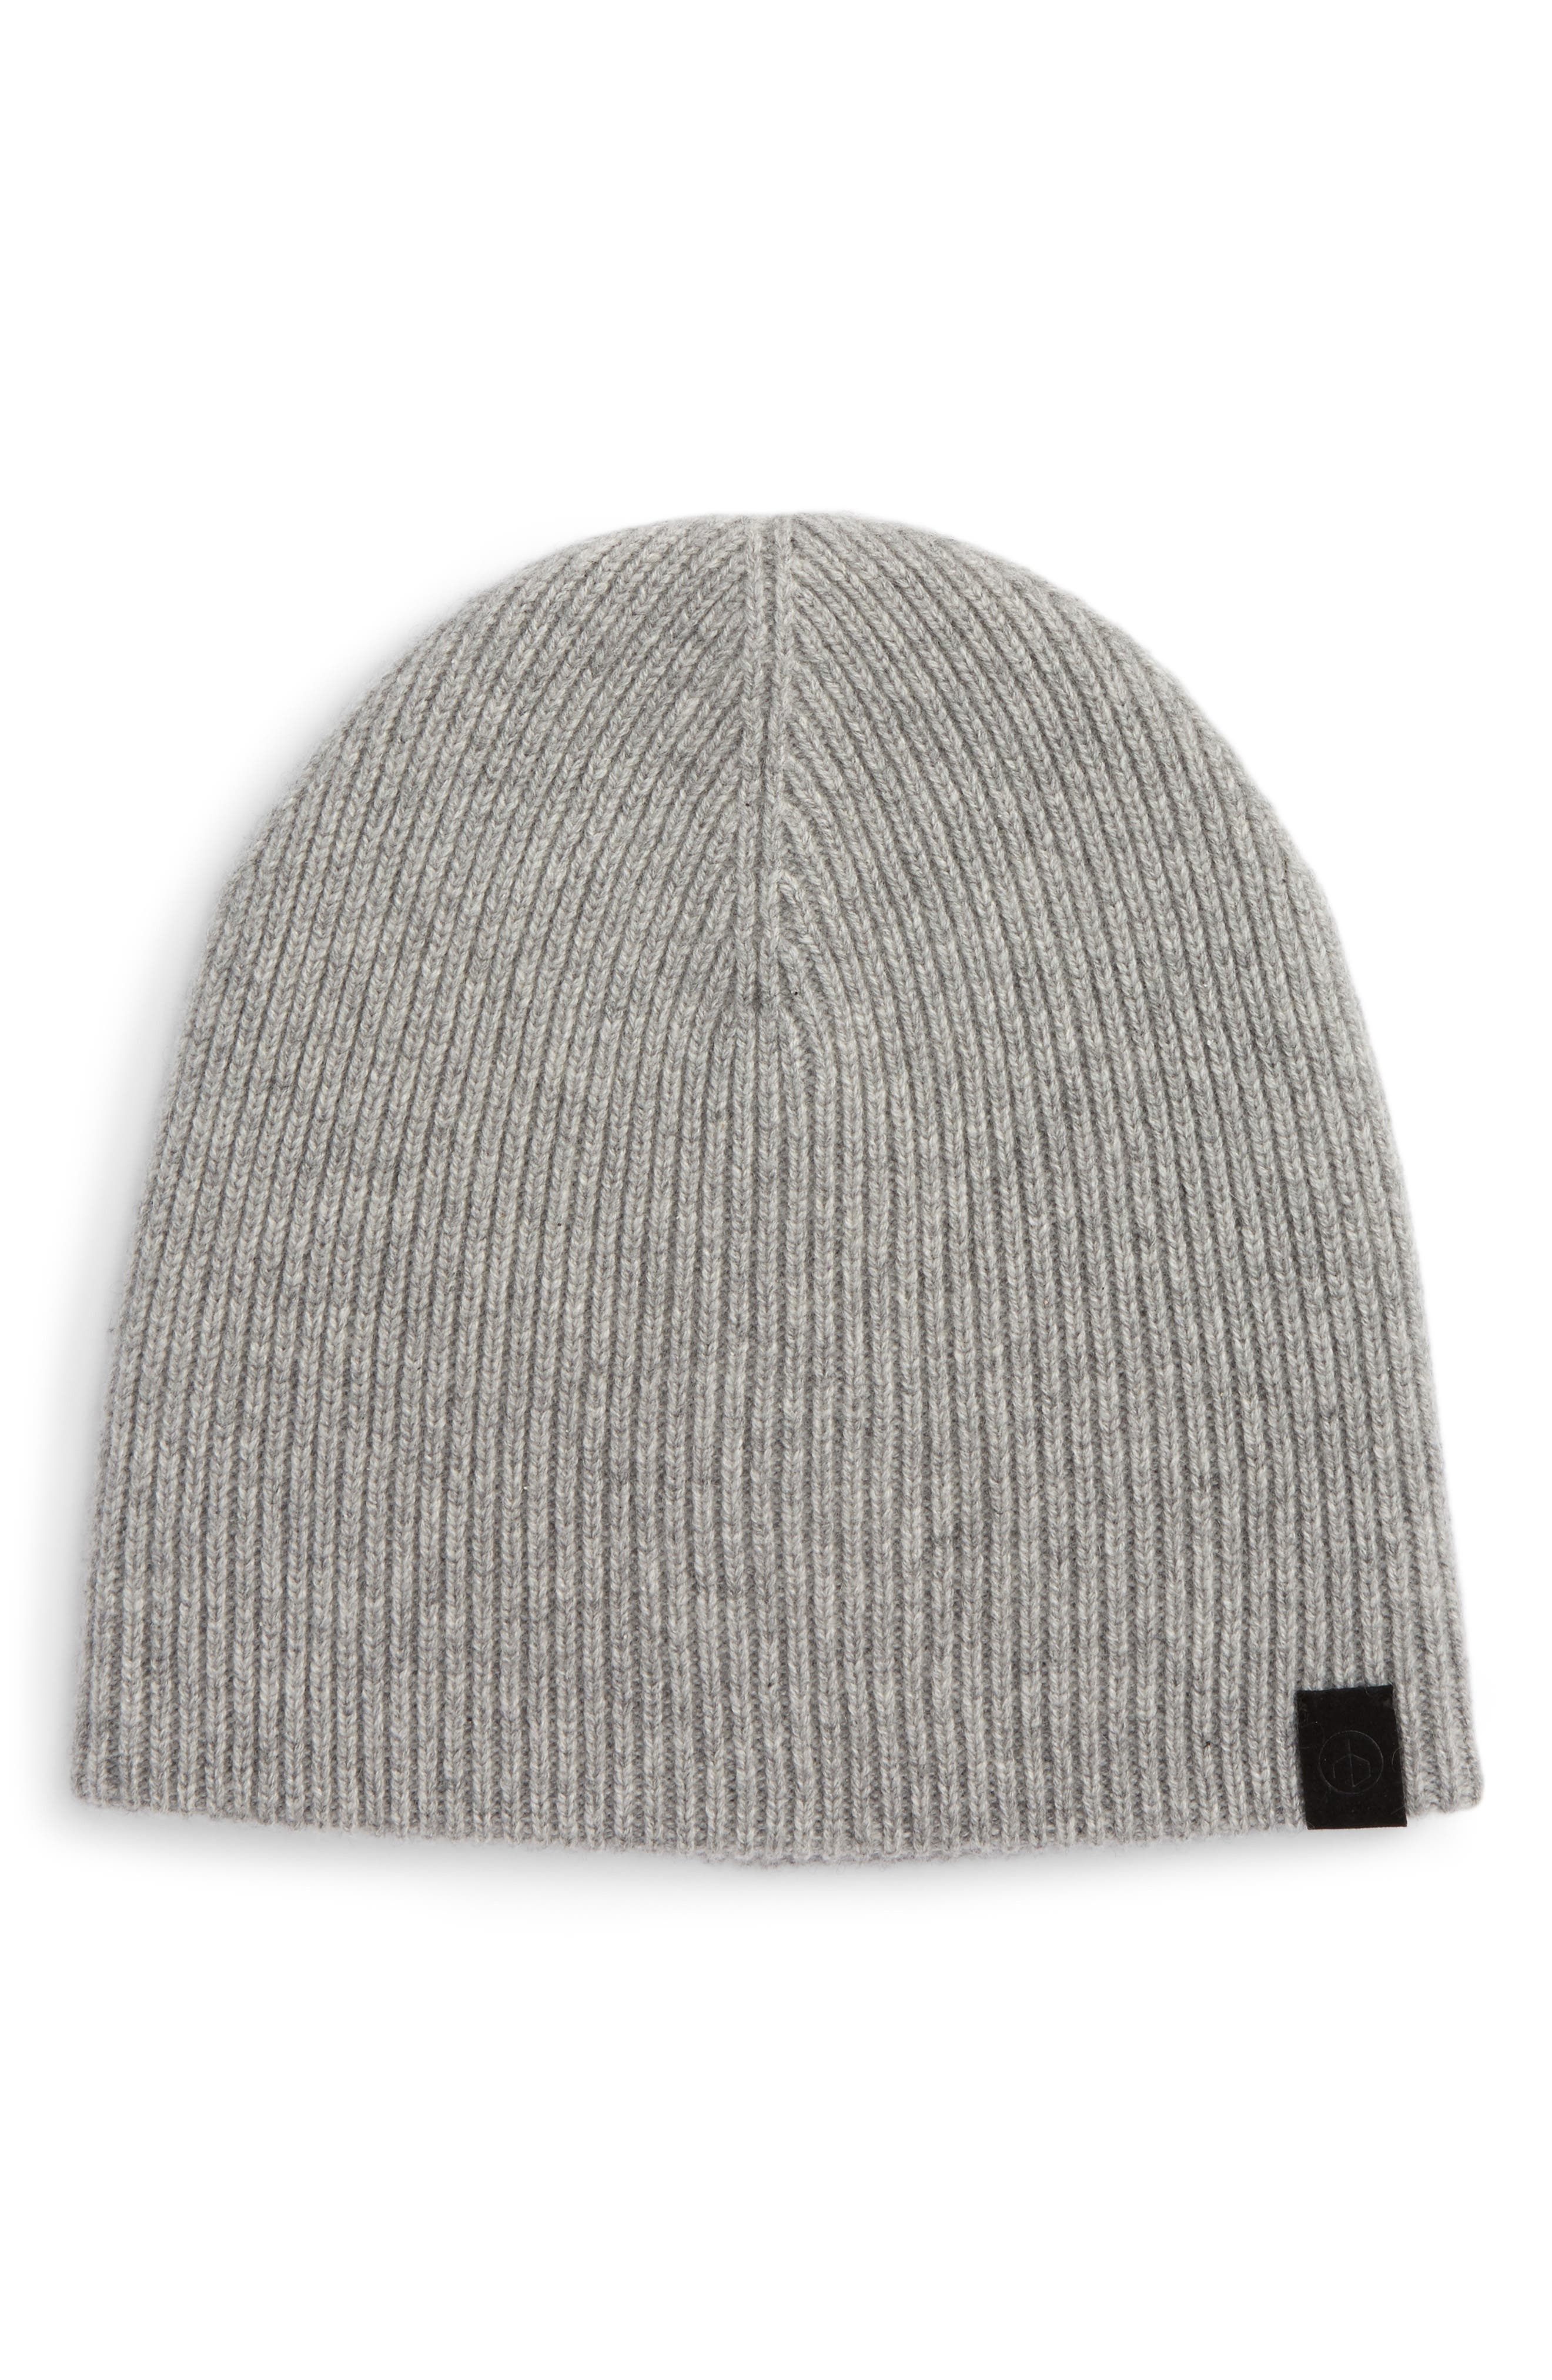 Ace Cashmere Knit Cap,                         Main,                         color, Grey